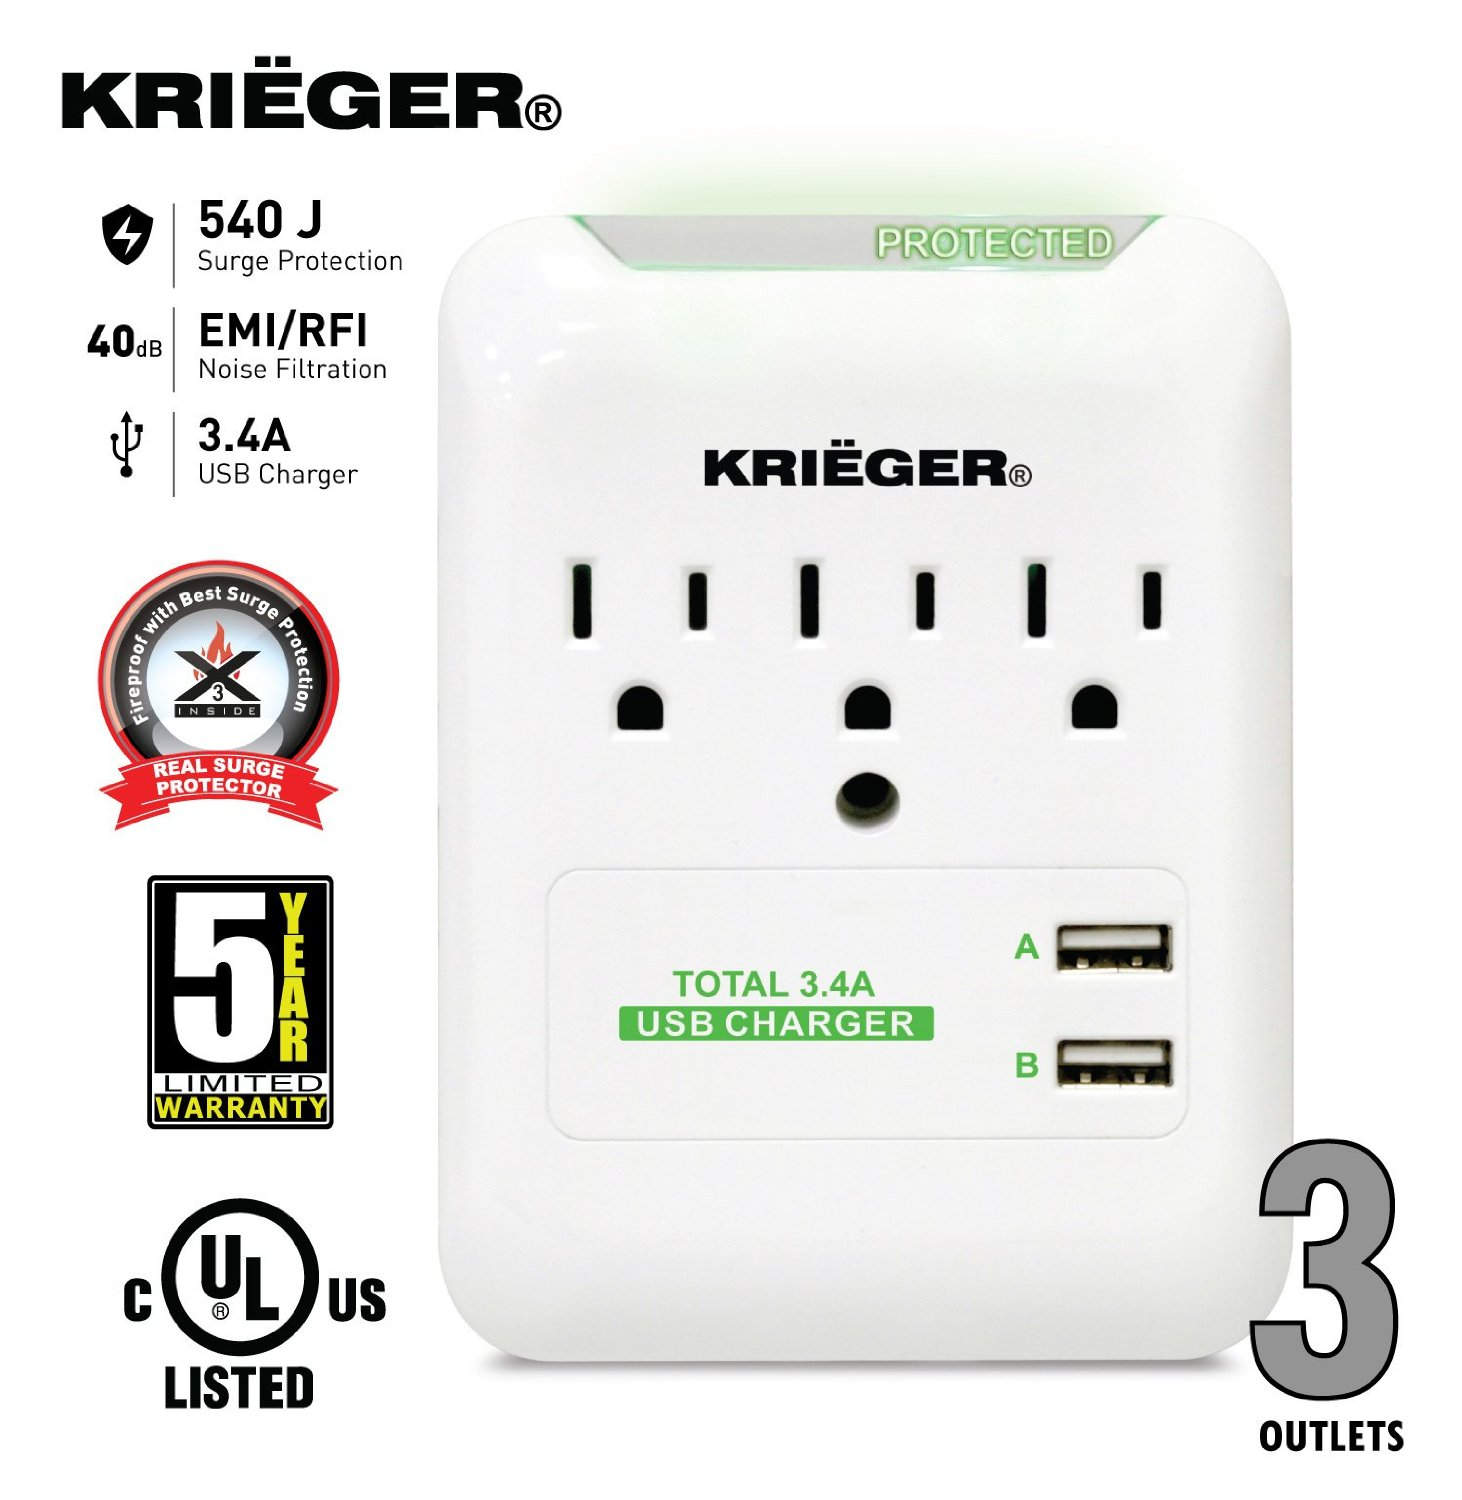 KRIEGER® UL 1449 Wall Mount 3 Outlet 540J Advanced Fireproof Surge protector with X3 MOV Technology - Dual USB Ports (3.4A max) fast charge your Iphones, android galaxy, Samsung, ipad tablet and more